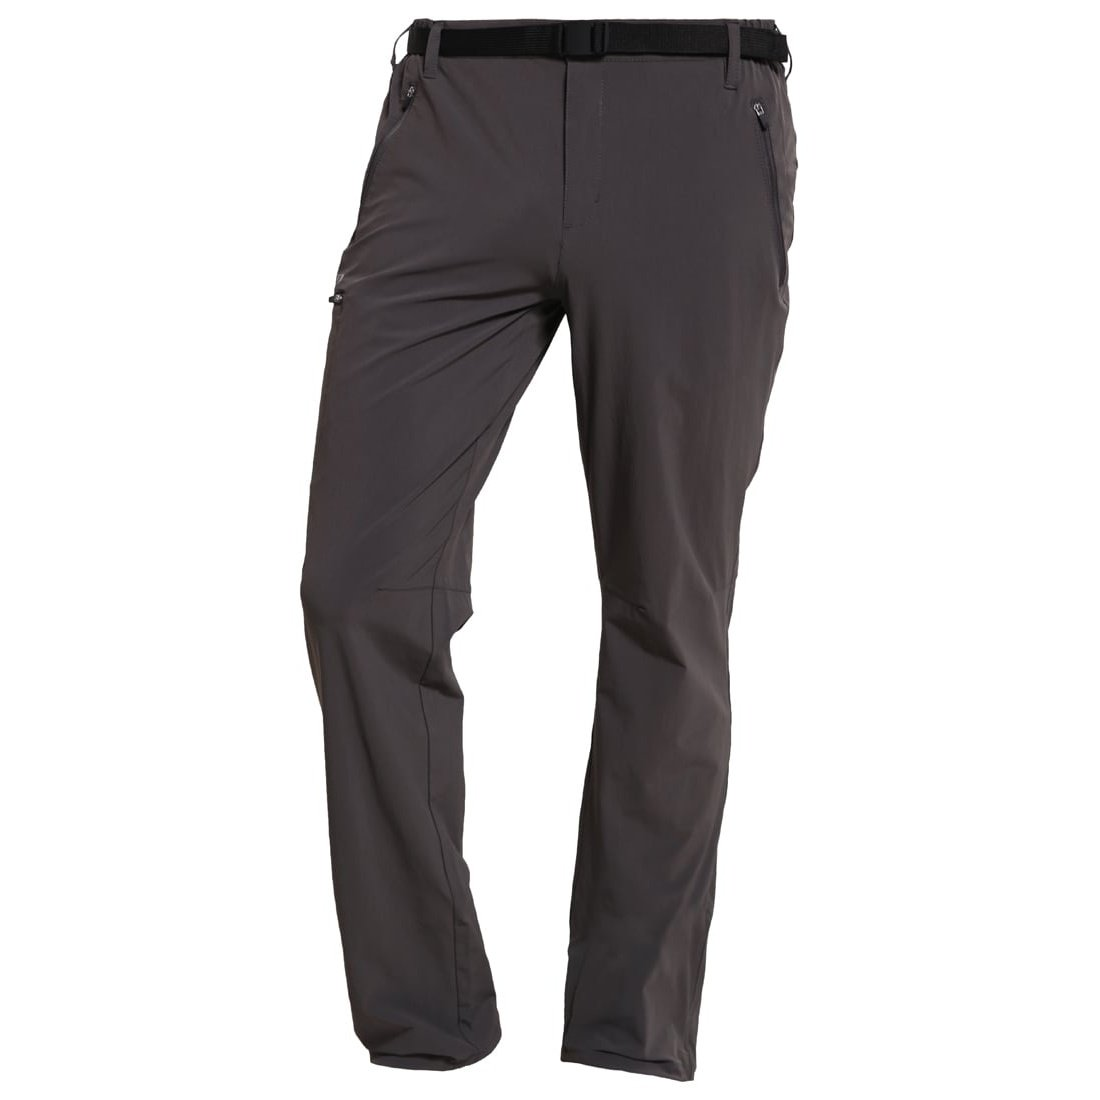 Regatta Xert Stretch II Trousers Men Short Seal Grau Größe 60-Short 2019 Hose lang